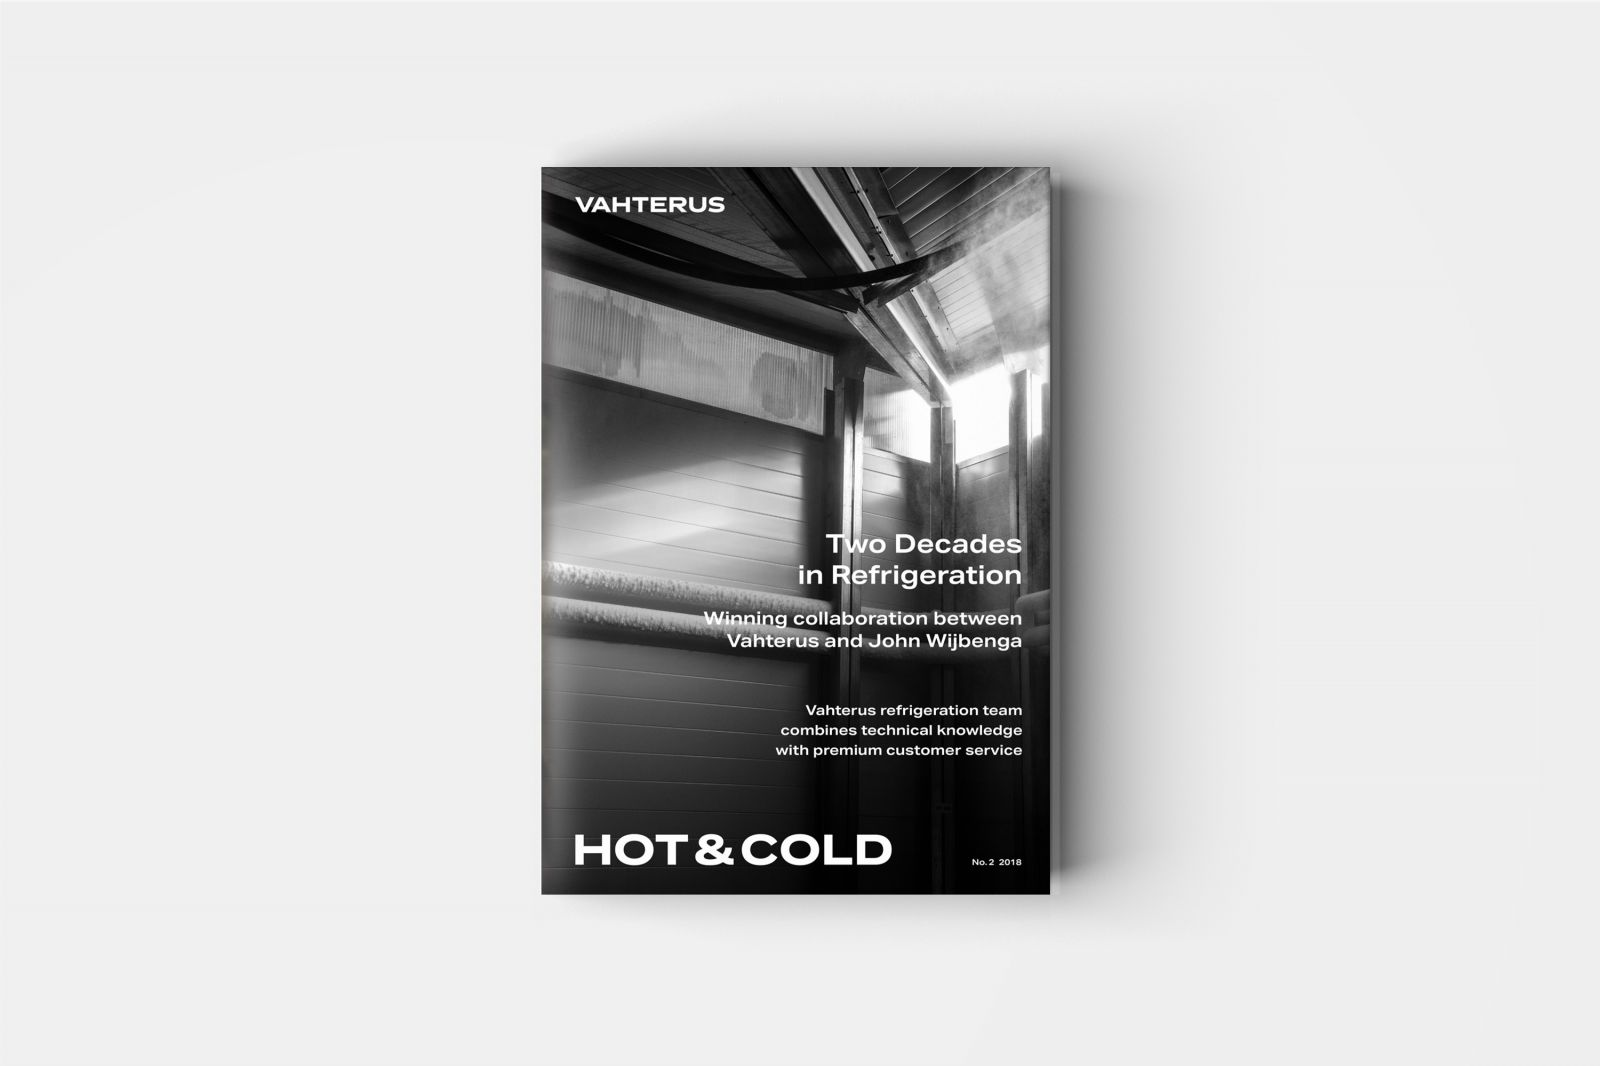 Vahterus Hot & Cold 2/2018